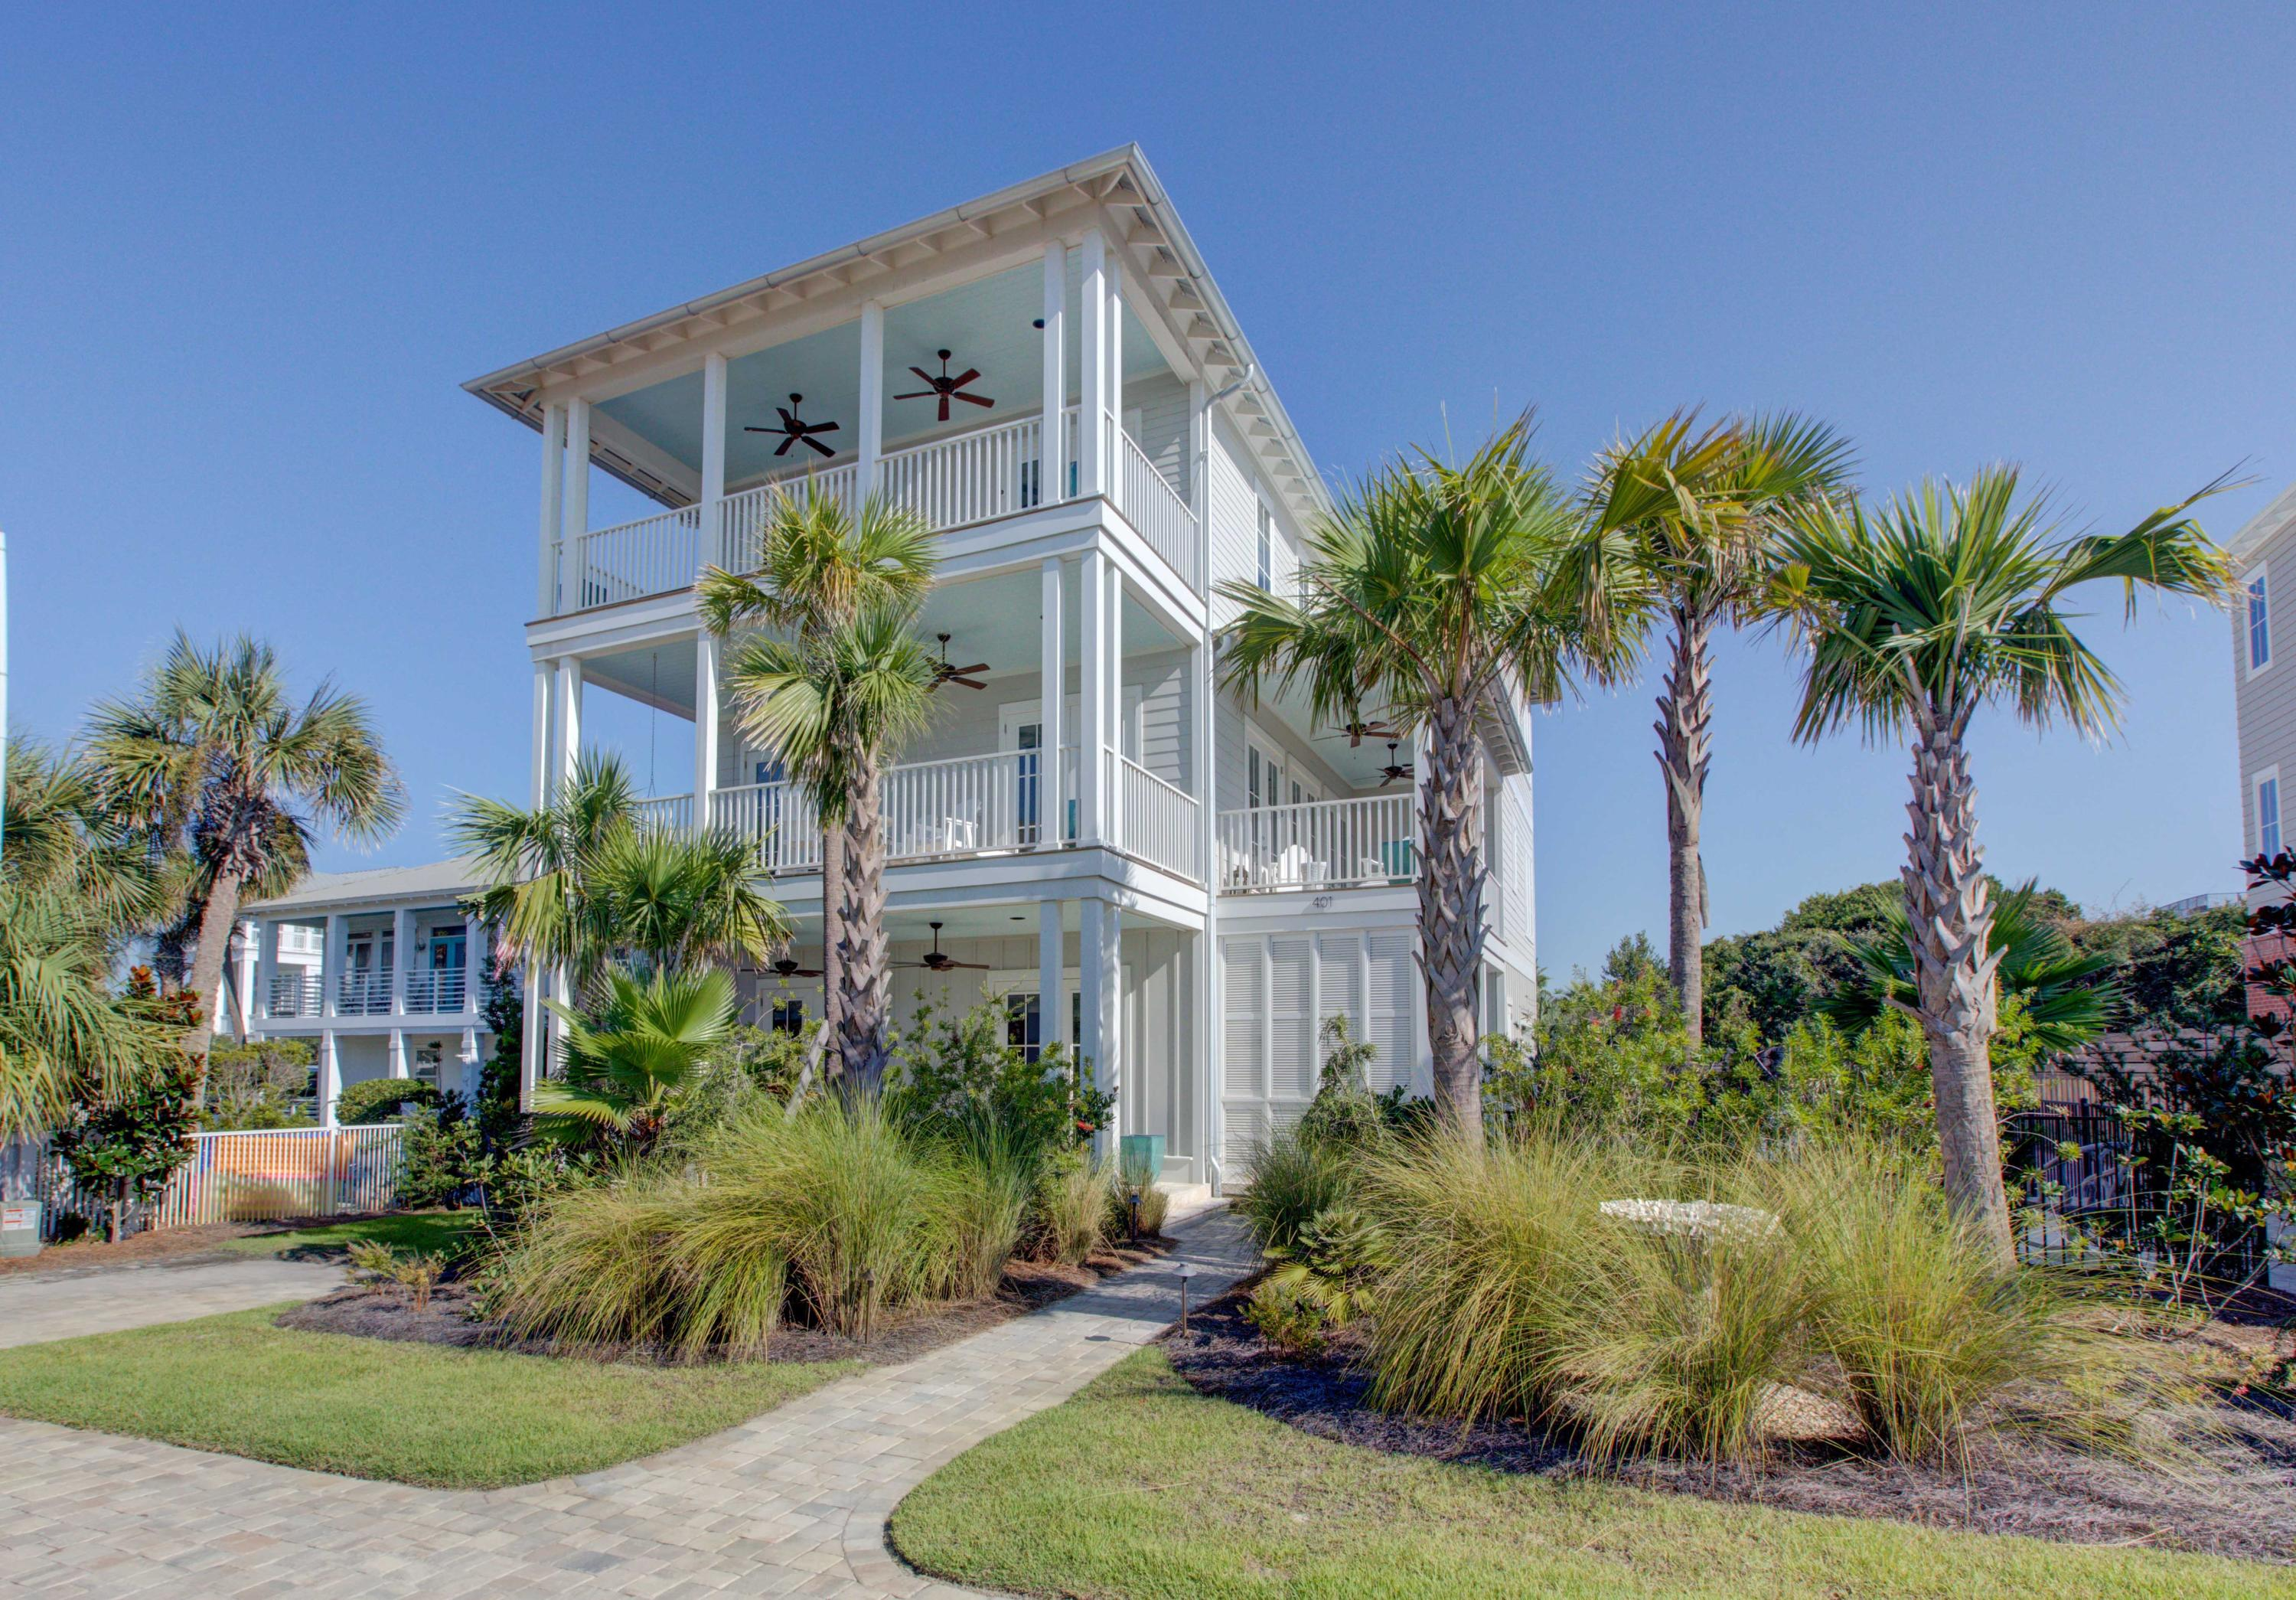 401 Blue Mountain,Santa Rosa Beach,Florida 32459,6 Bedrooms Bedrooms,6 BathroomsBathrooms,Detached single family,Blue Mountain,20131126143817002353000000